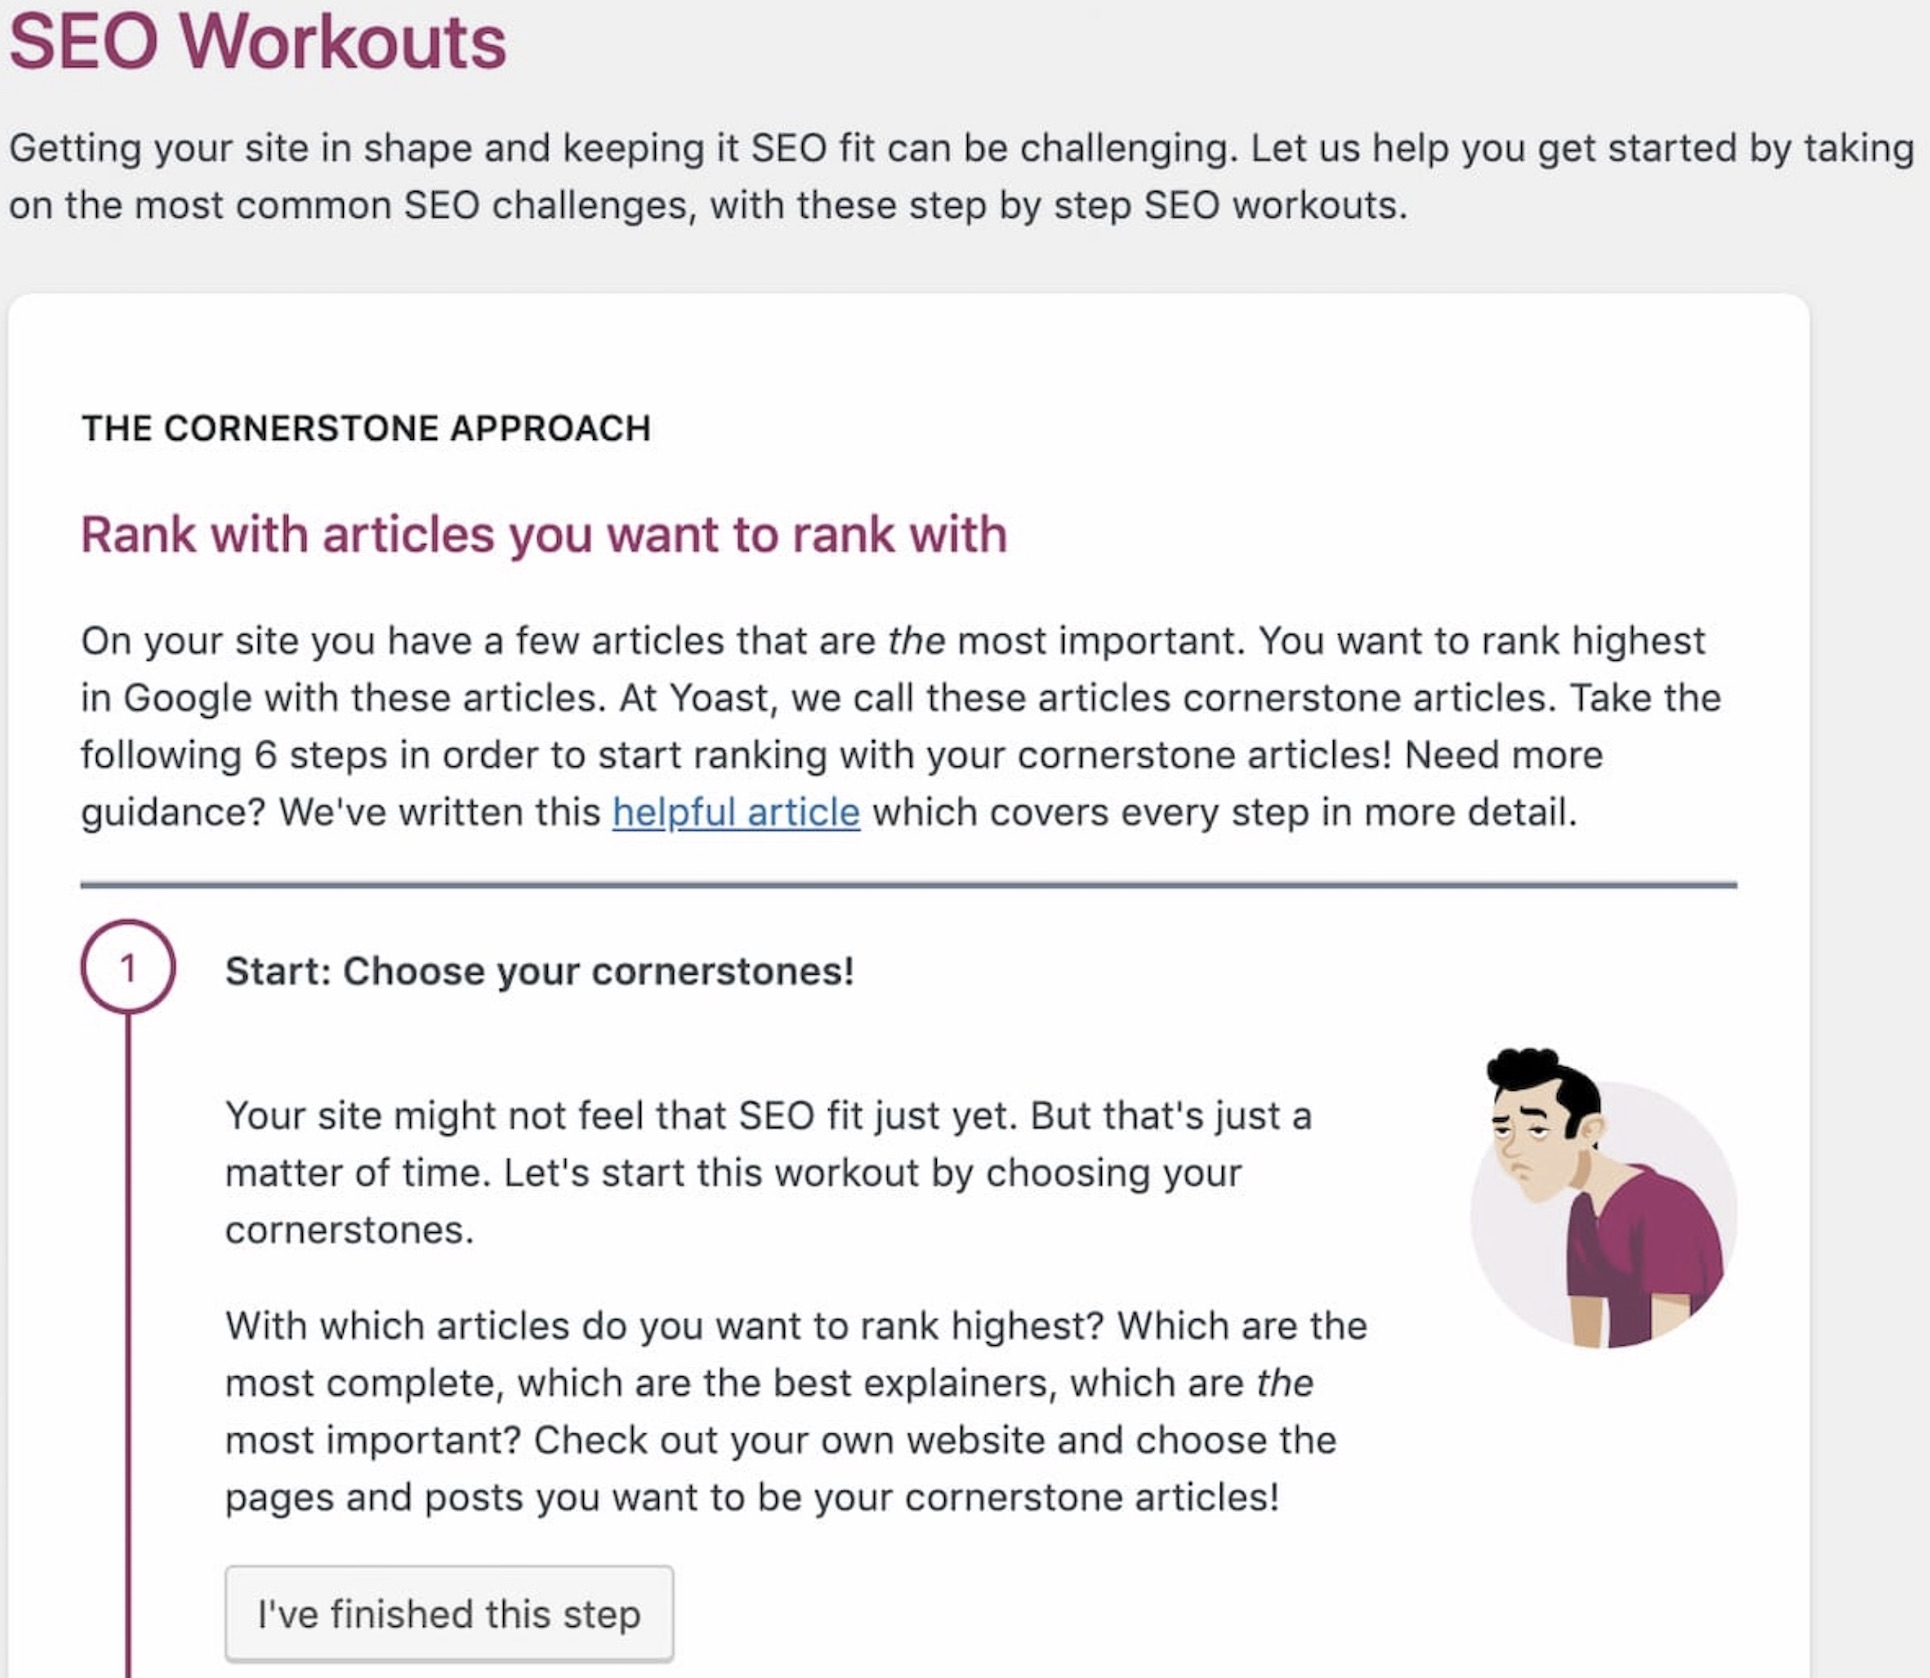 Step one of the SEO workout